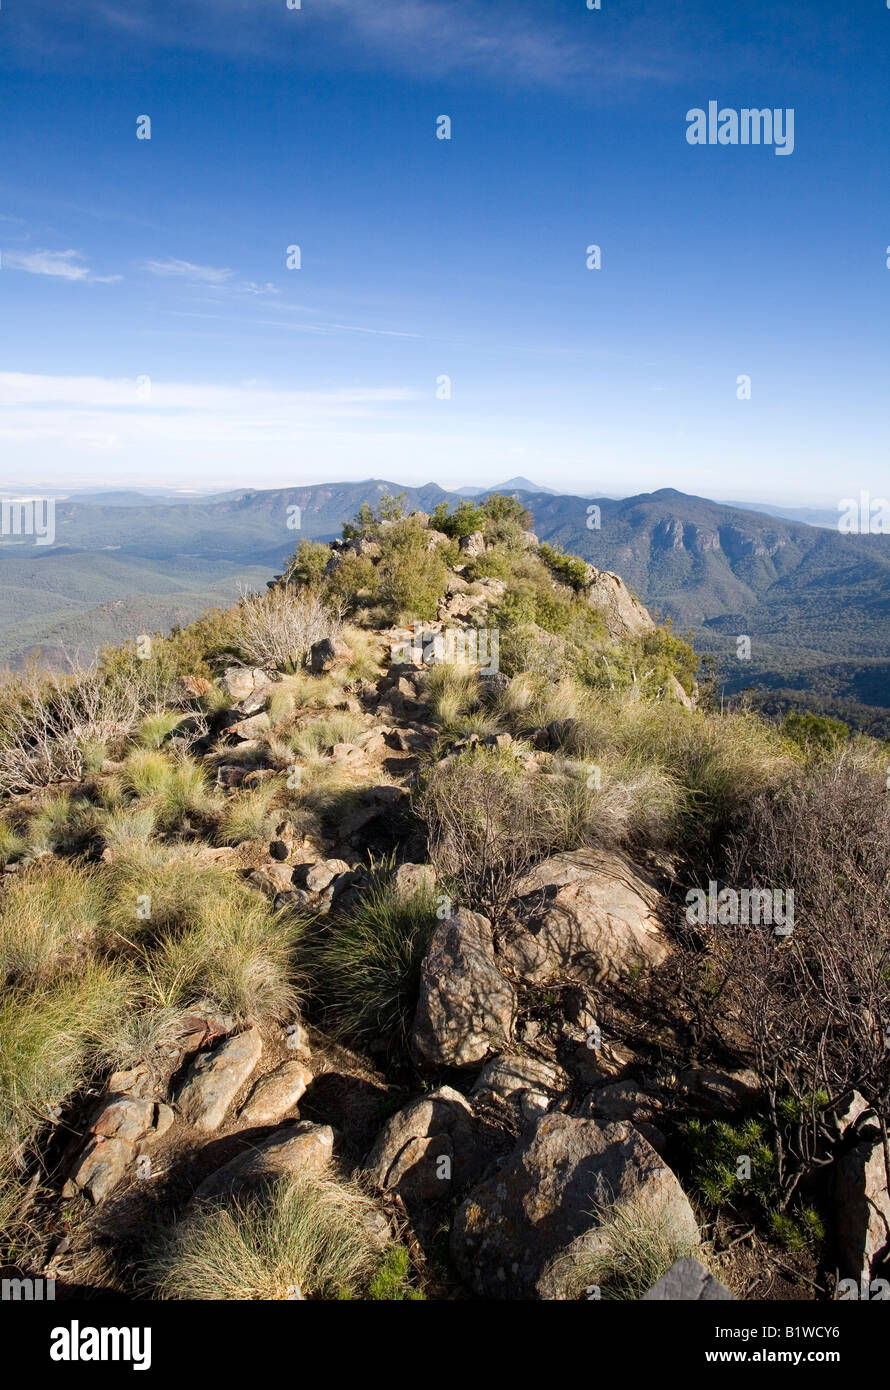 view-from-the-summit-of-mt-kaputar-western-nsw-australia-mt-kaputar-B1WCY6.jpg